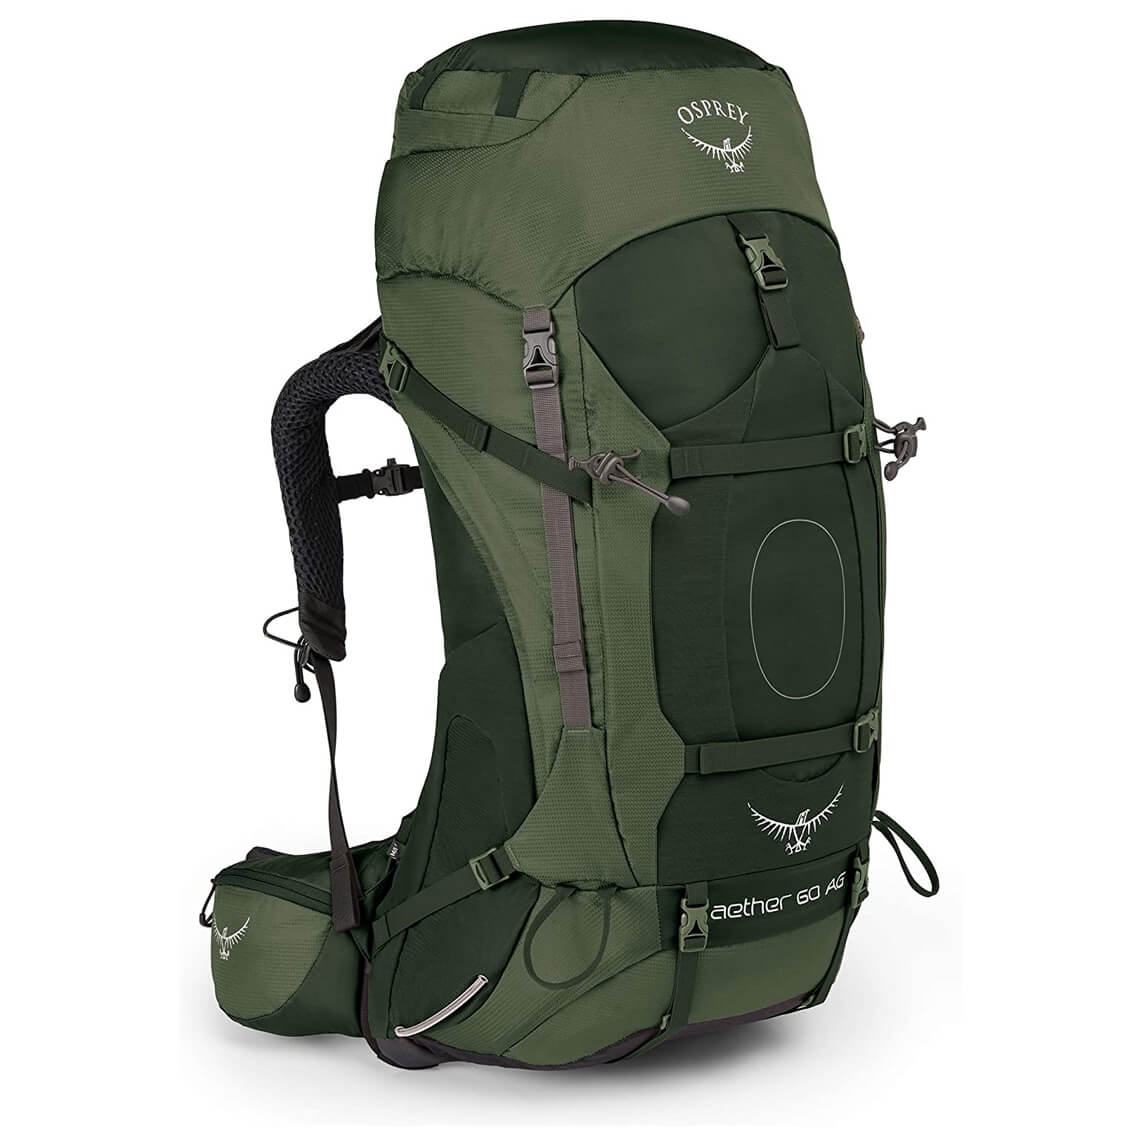 Osprey Aether AG 60 Pack